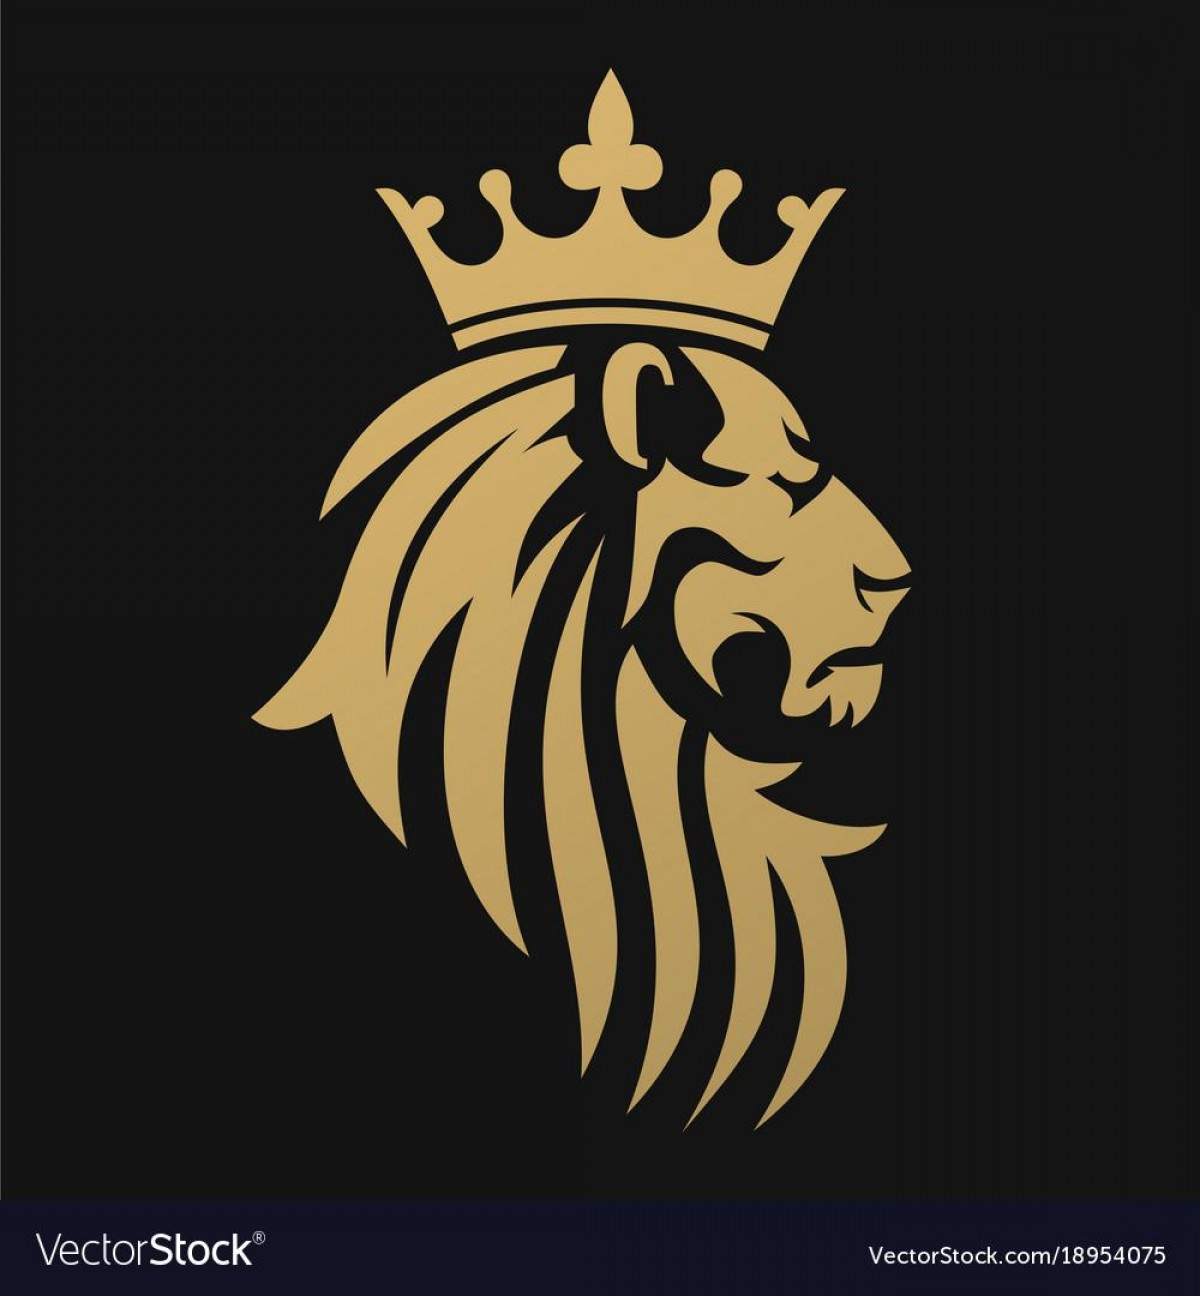 1200x1296 Best Hd Lion With Crown Logo Vector Drawing Shopatcloth